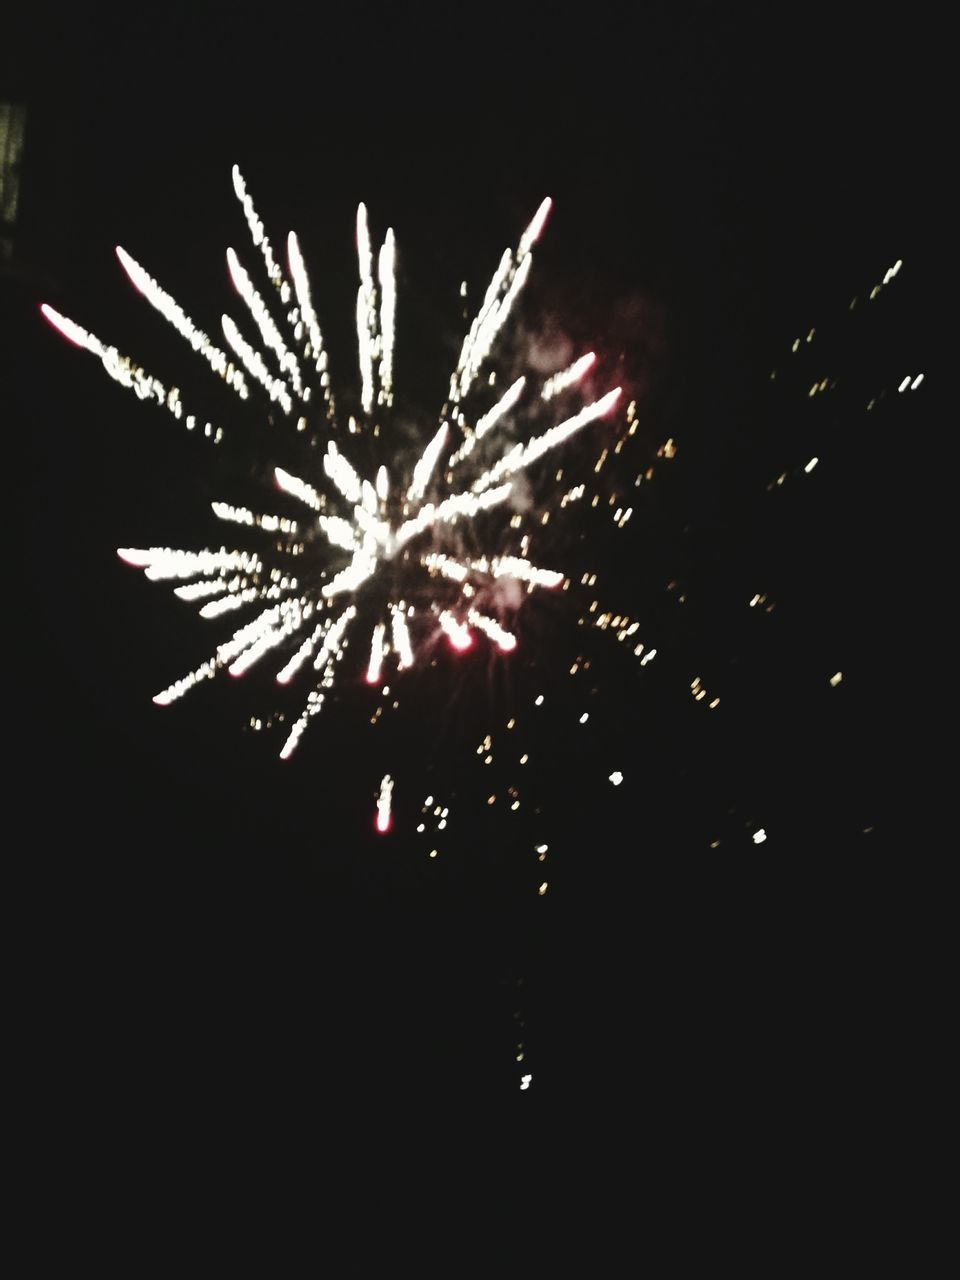 celebration, night, firework display, firework - man made object, exploding, long exposure, arts culture and entertainment, event, illuminated, glowing, low angle view, motion, blurred motion, no people, multi colored, firework, outdoors, sky